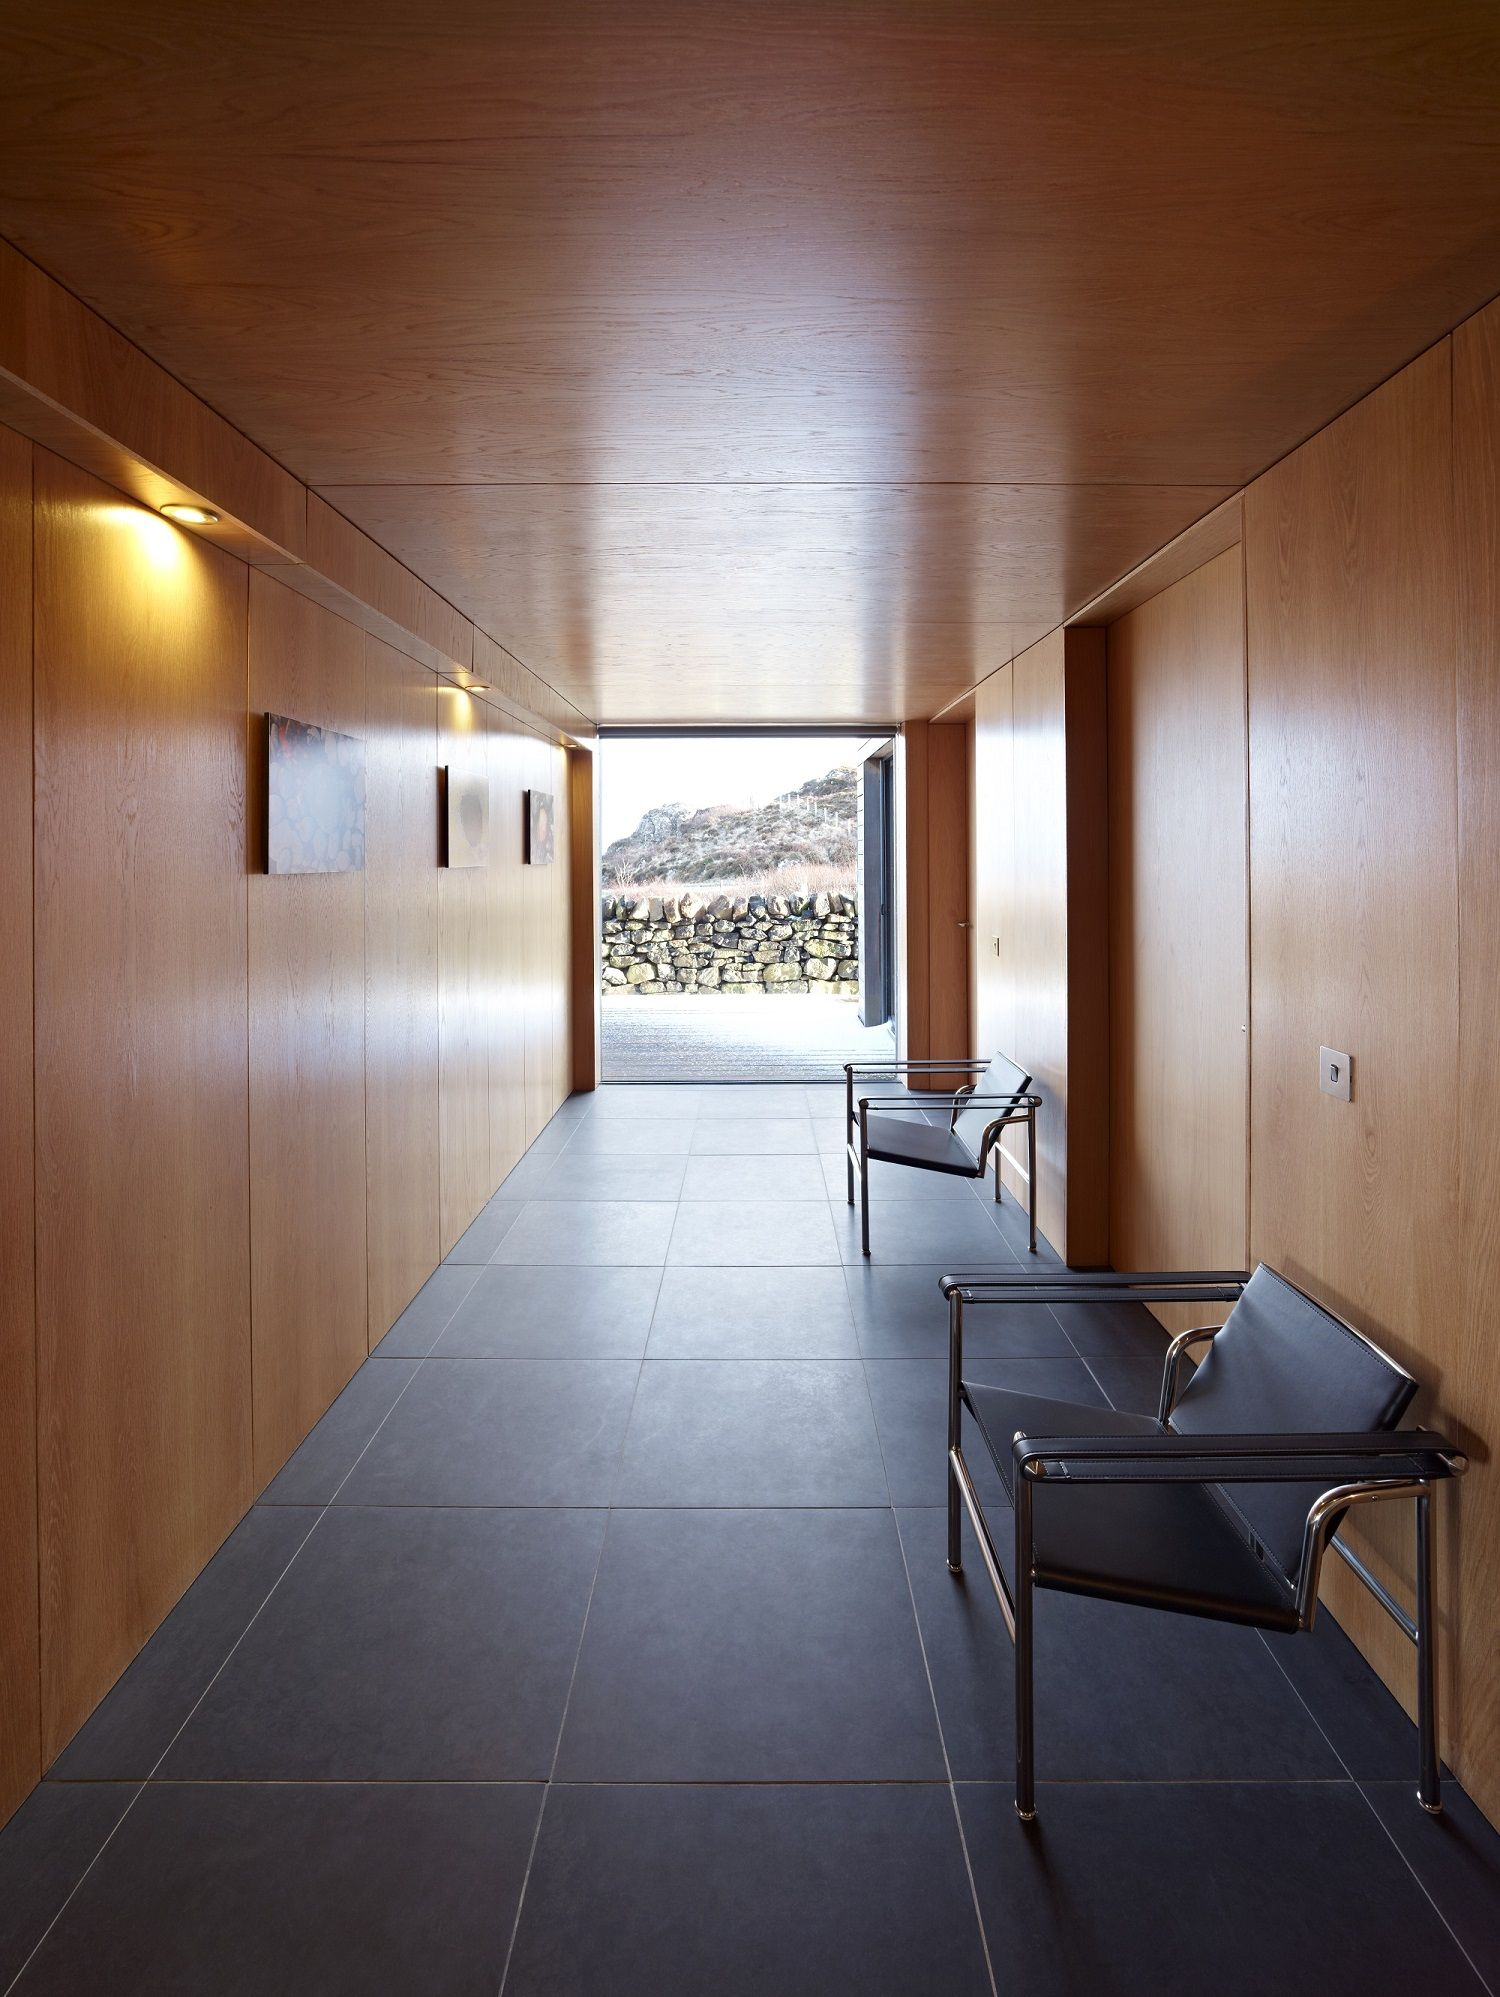 Boreraig   This Multi Award Winning House Has Been Inspired But The  Blockhouse, But Abstracted In To Modern Architecture. The Client Inherited  The Croft ...